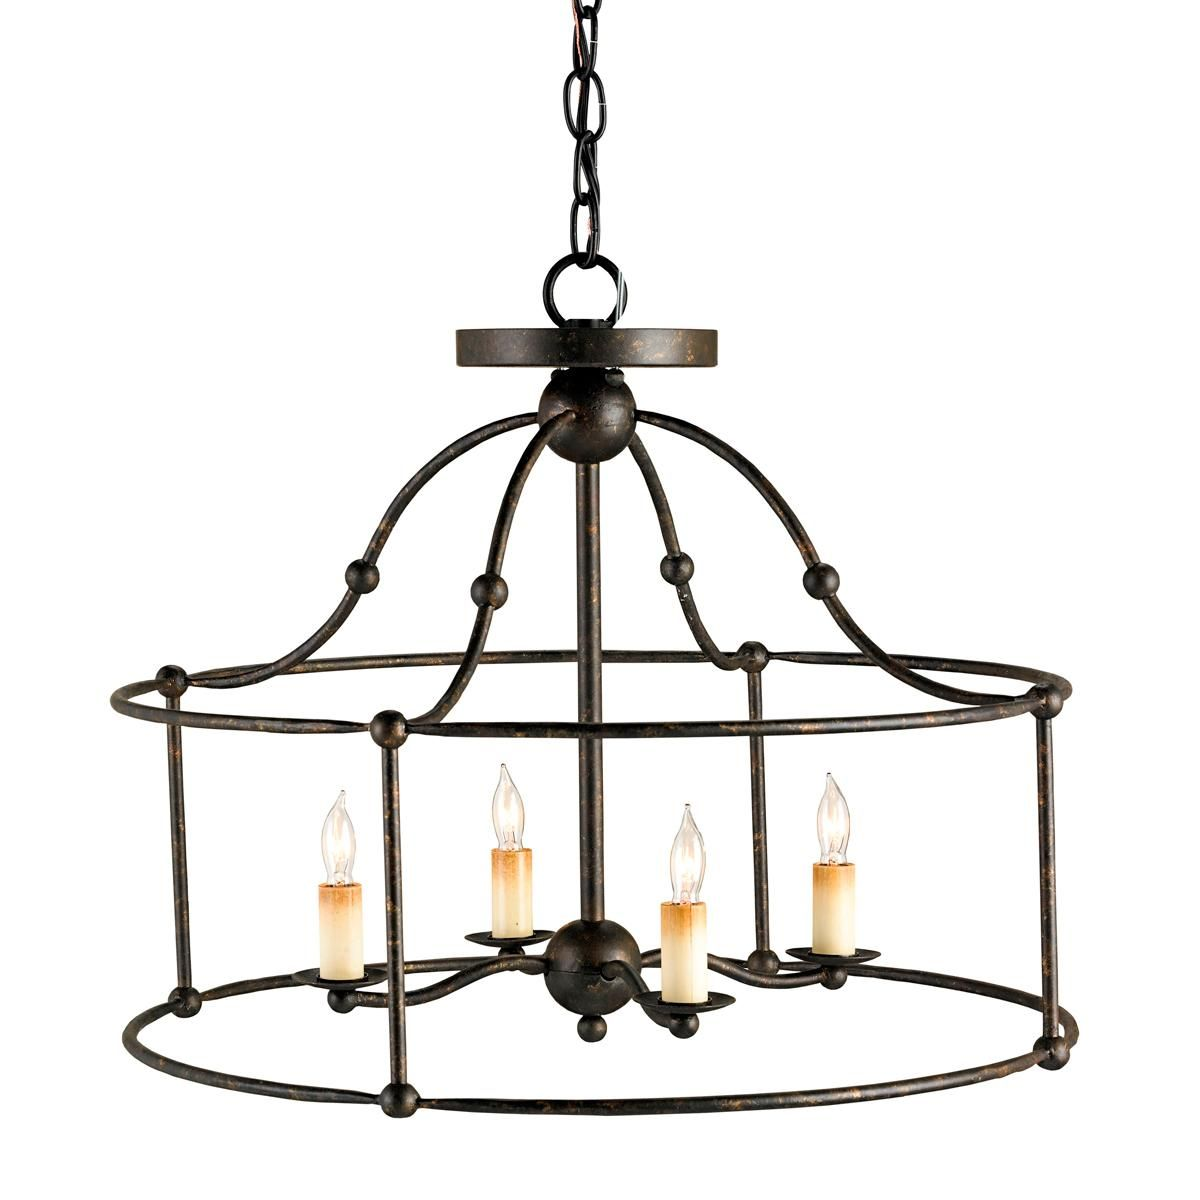 Wrought Iron Frame Ceiling Lantern Ceiling Light | Wrought iron ...